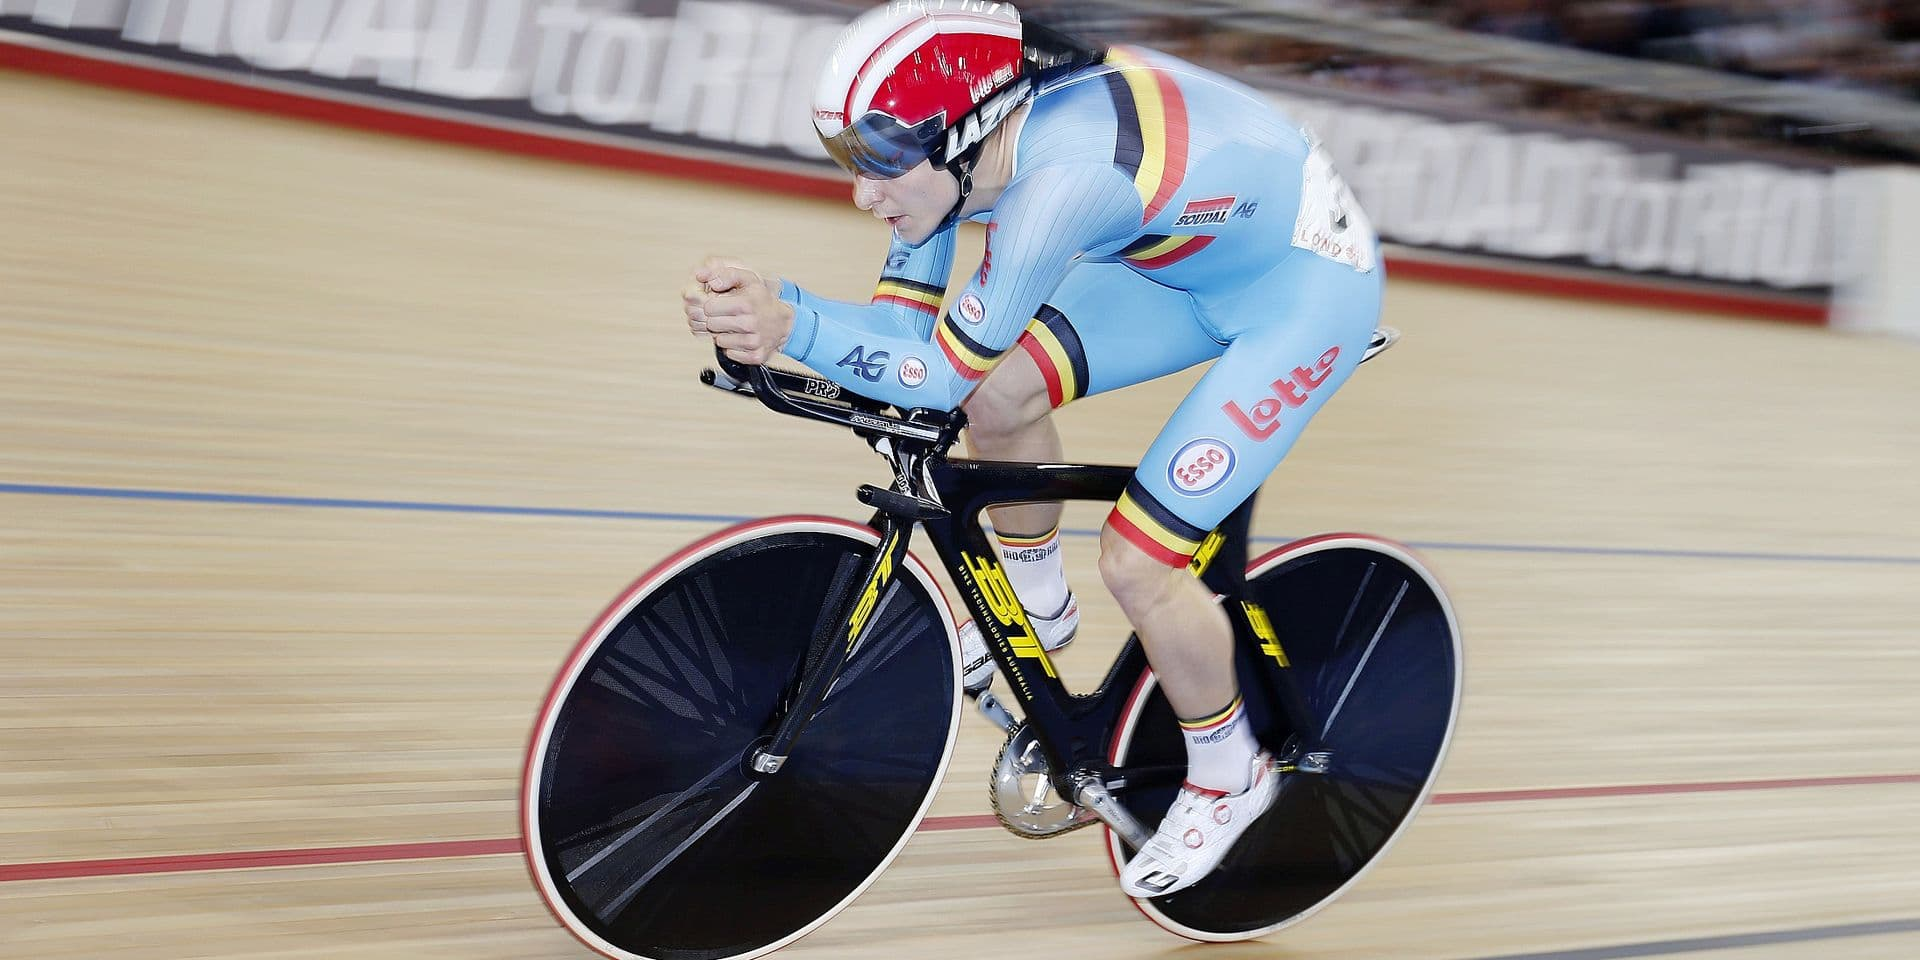 Belgian Jasper De Buyst pictured in action during the Men Omnium Individual Pursuit race at the UCI Track Cycling World Championships in London, Friday 04 March 2016. The championship starts on the 2nd and ends on the 6th of March. BELGA PHOTO YUZURU SUNADA